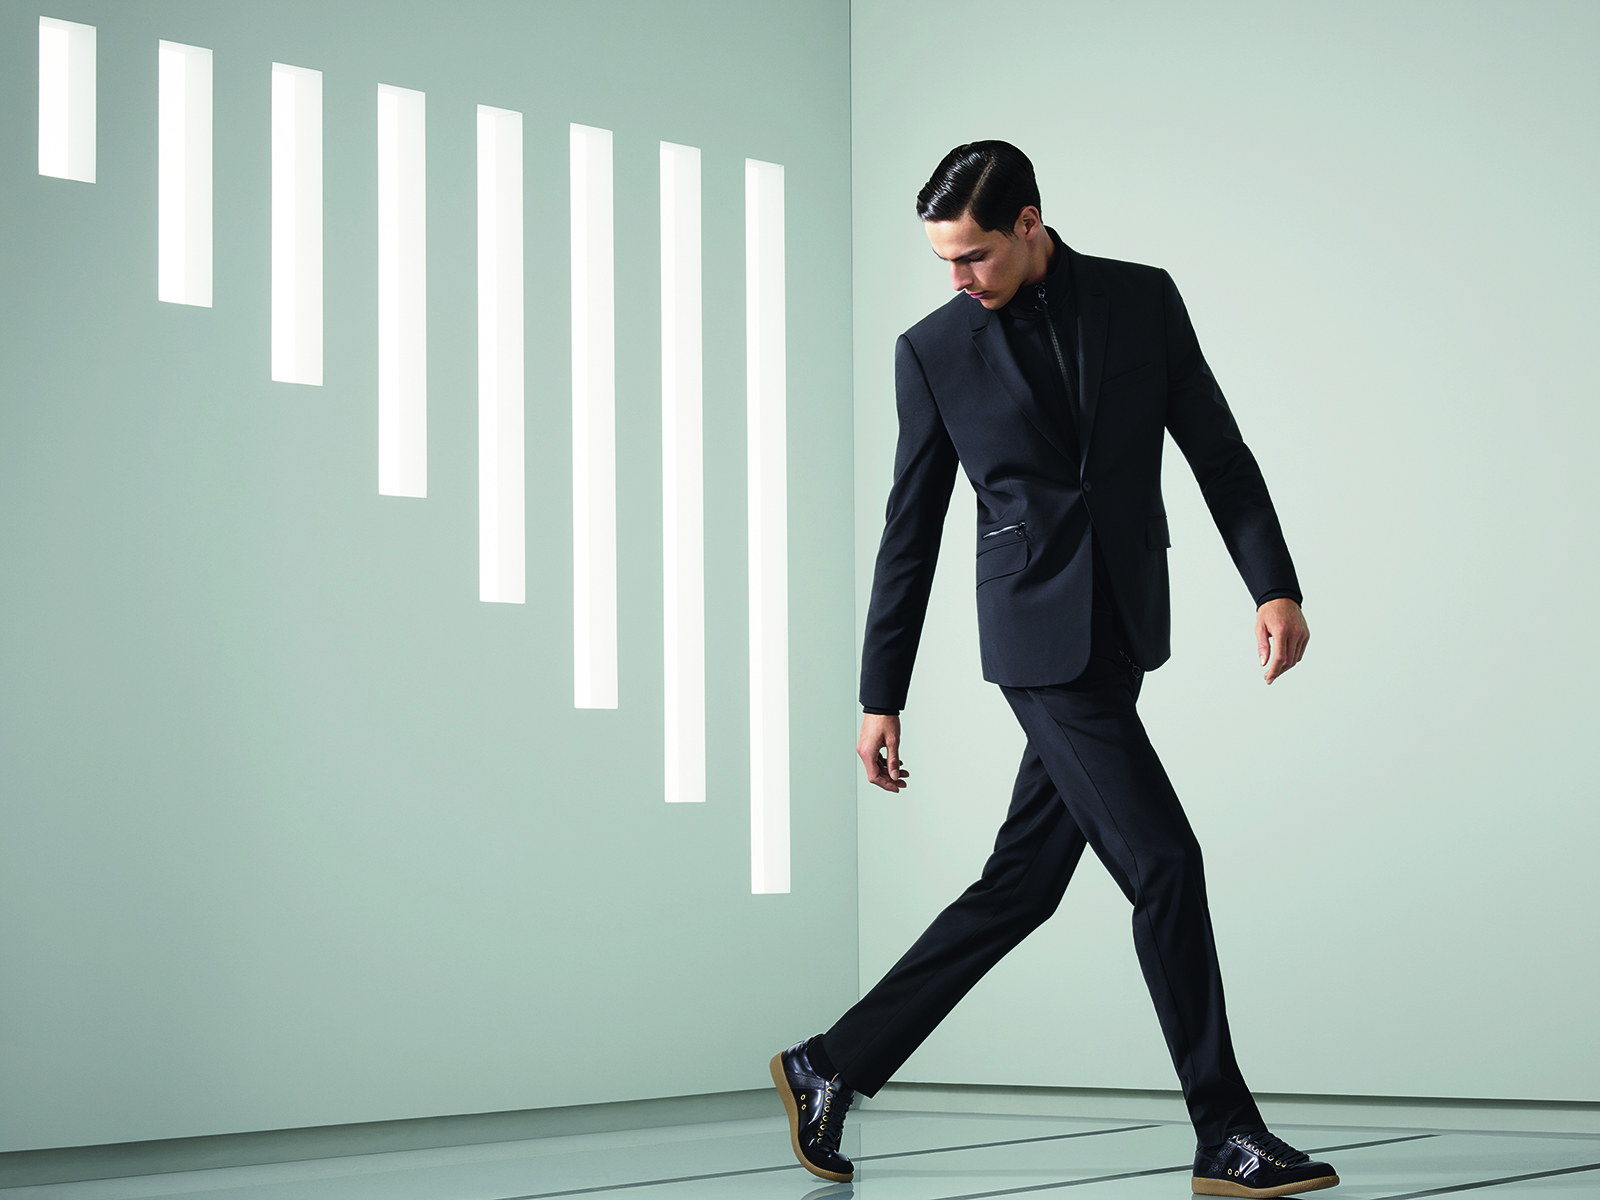 zip-rib-jacket-59-formal-jacket-120-formal-flat-front-trousers-79-leather-trainers-89